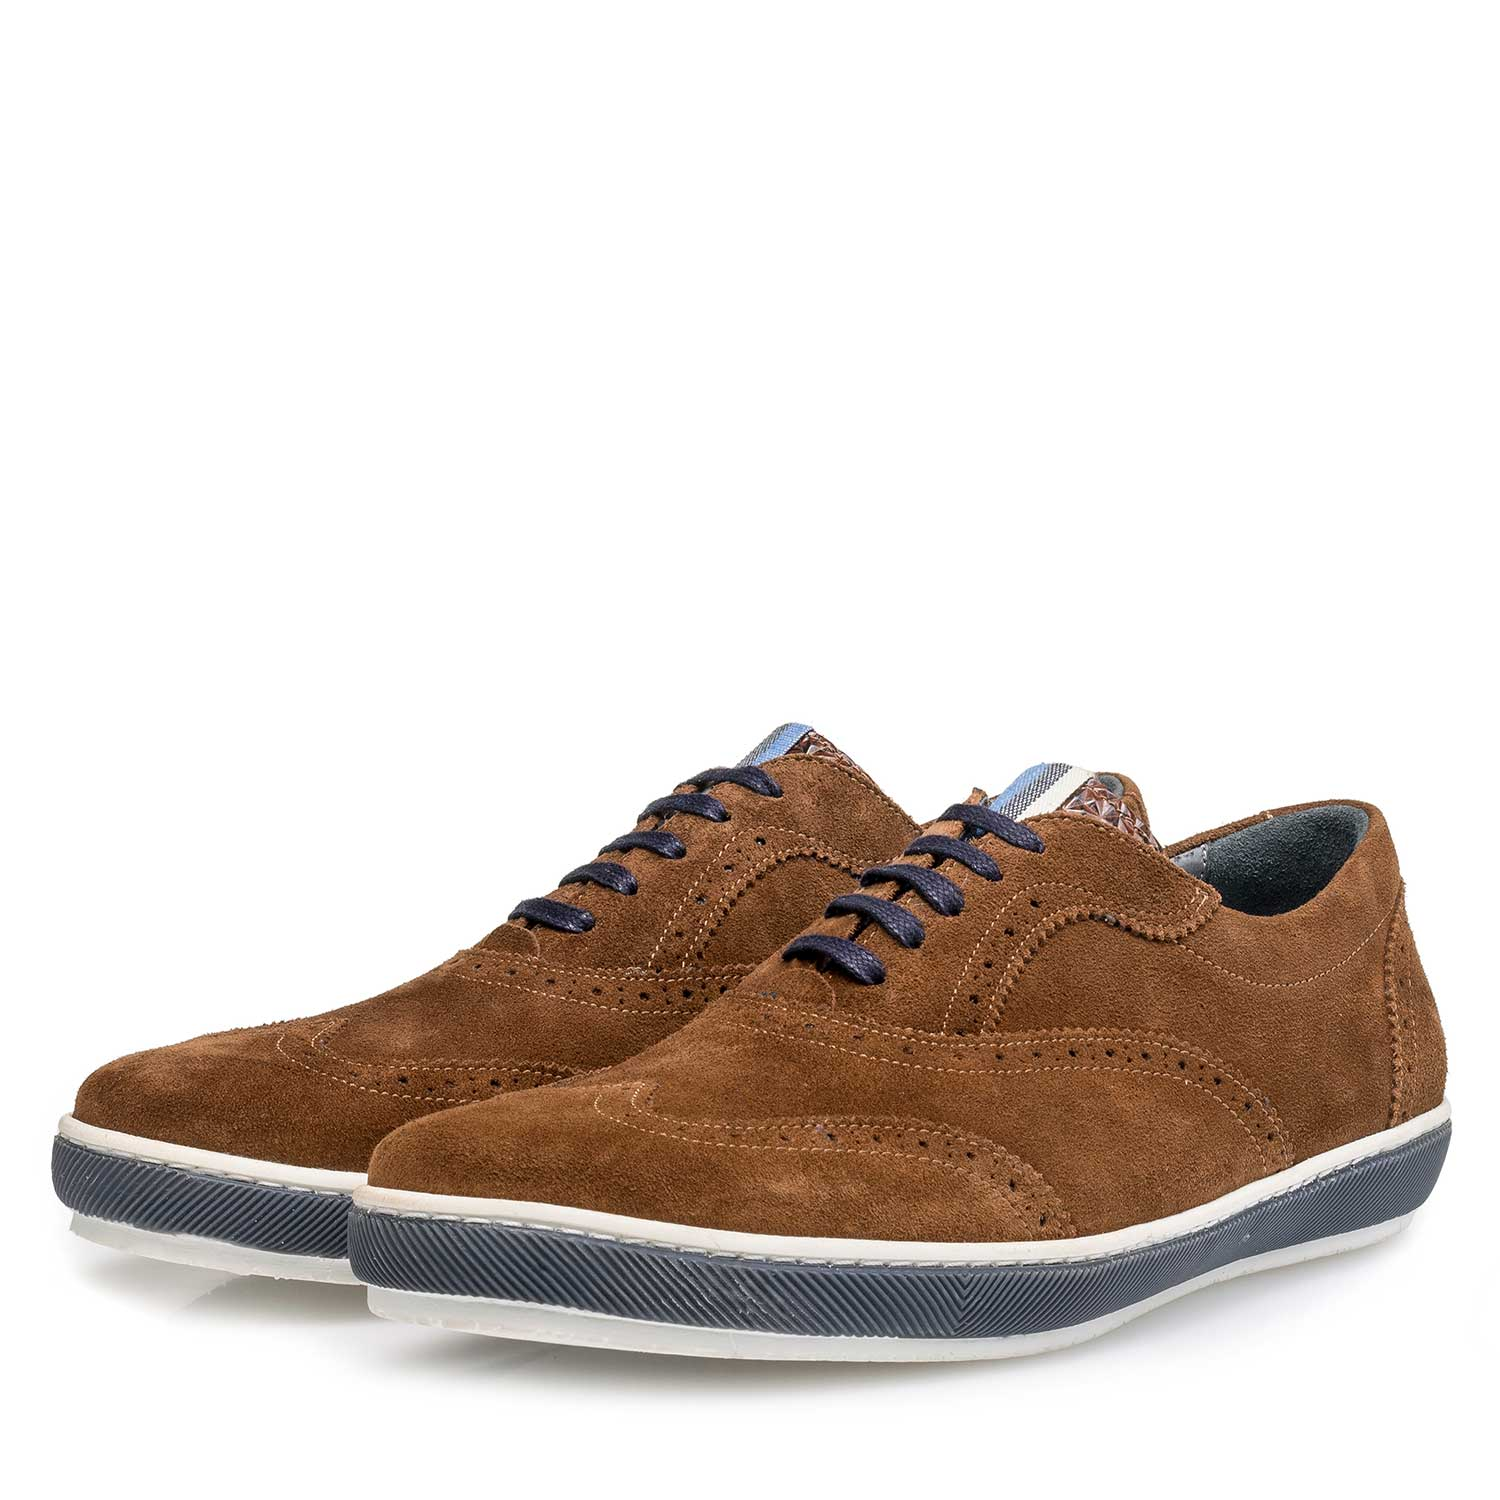 19036/44 - Brown suede leather brogue shoe